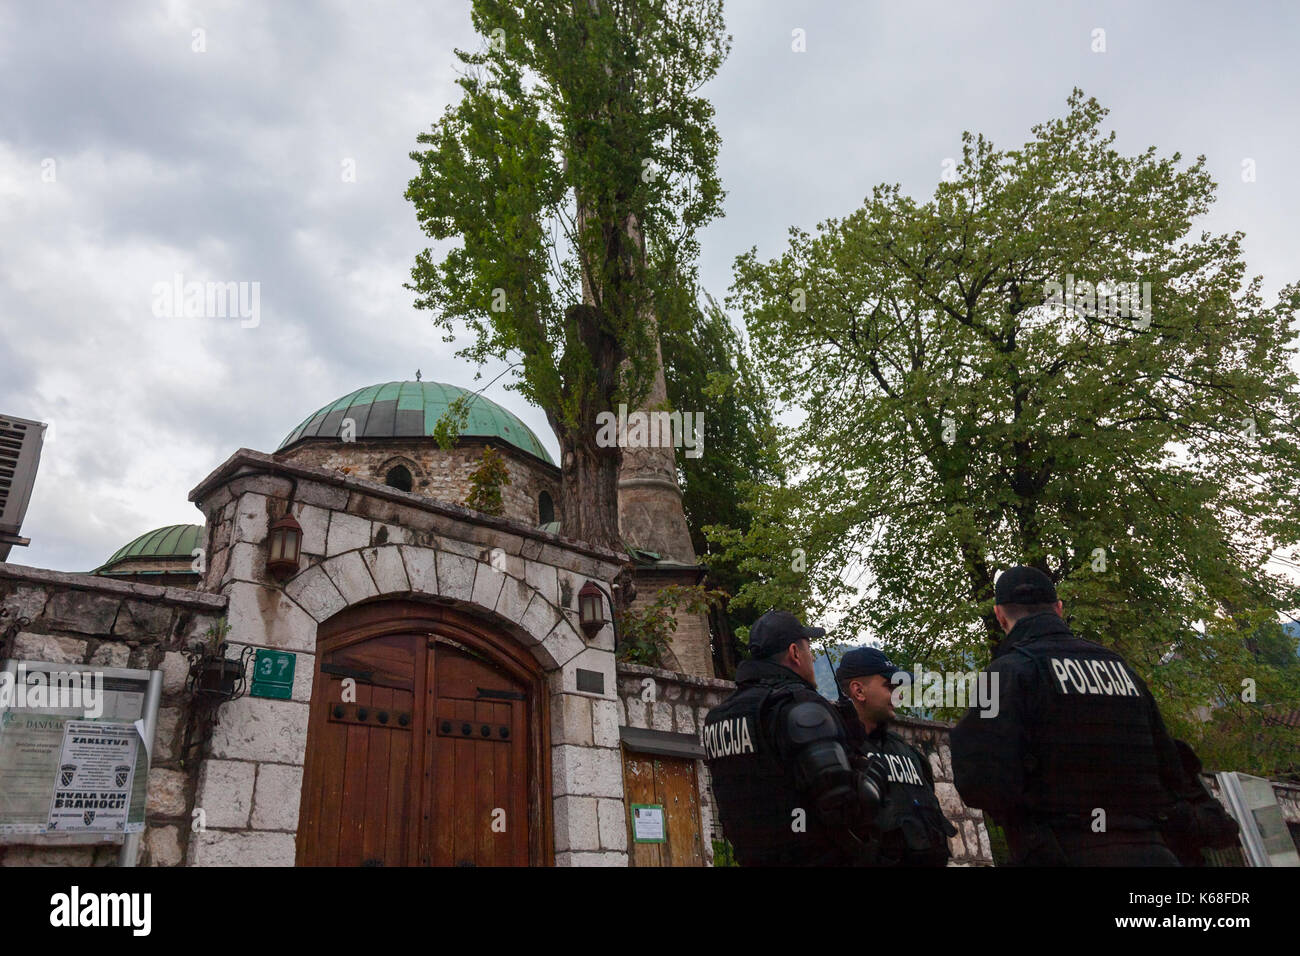 SARAJEVO, BOSNIA AND HERZEGOVINA - APRIL 15, 2017: Bosnian police units wearing bulletproof jackets patrolling in front of one of the mosques of the c - Stock Image